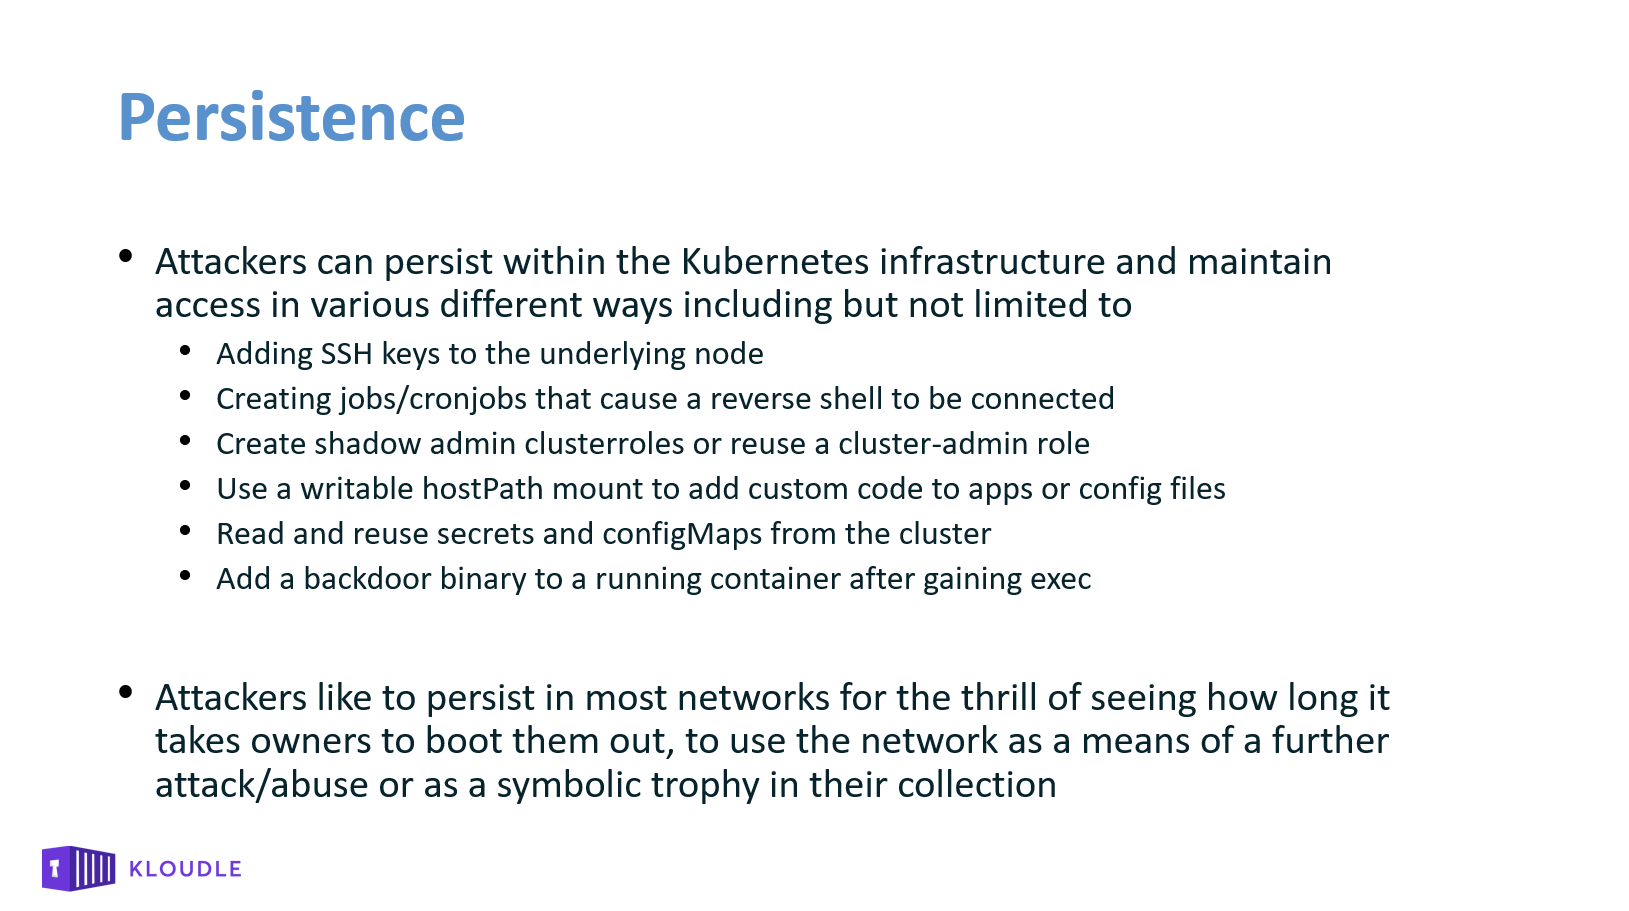 Persistence in Kubernetes